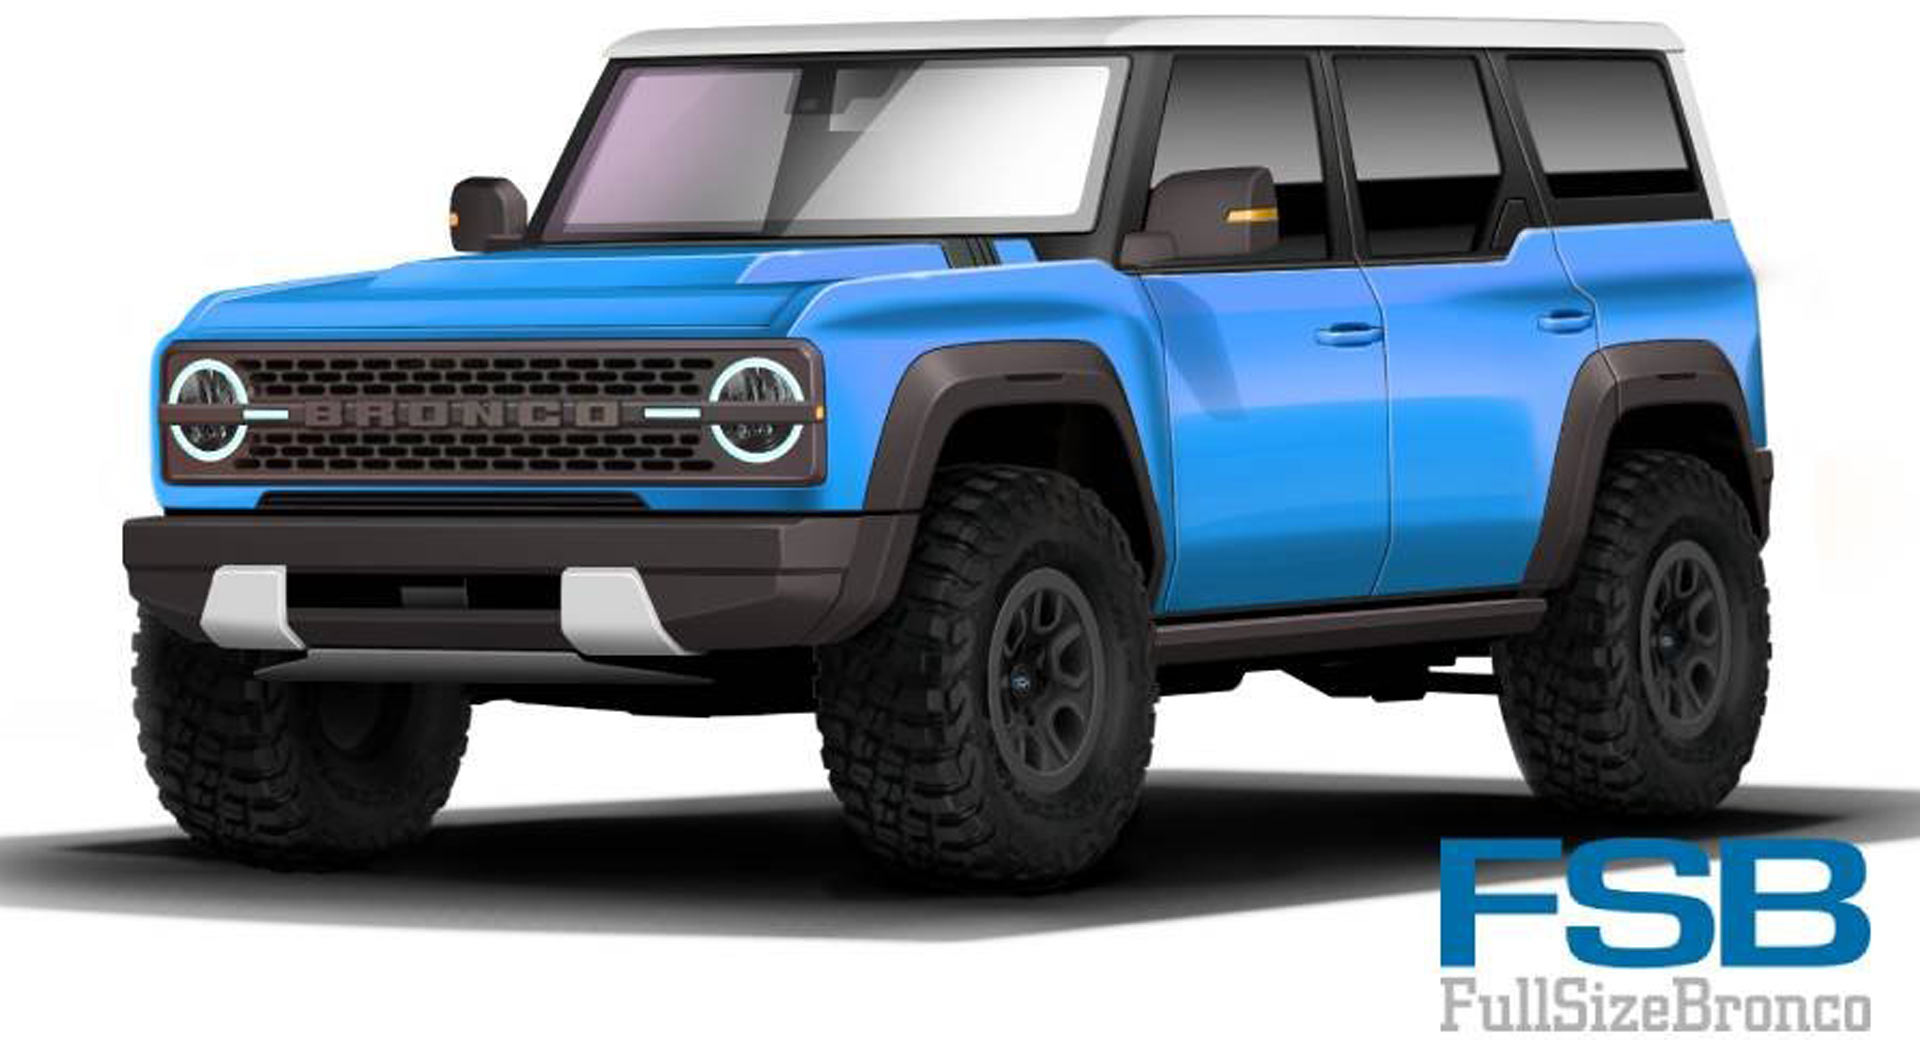 2021 Ford Bronco: Here's Another Rendered Take In A ...